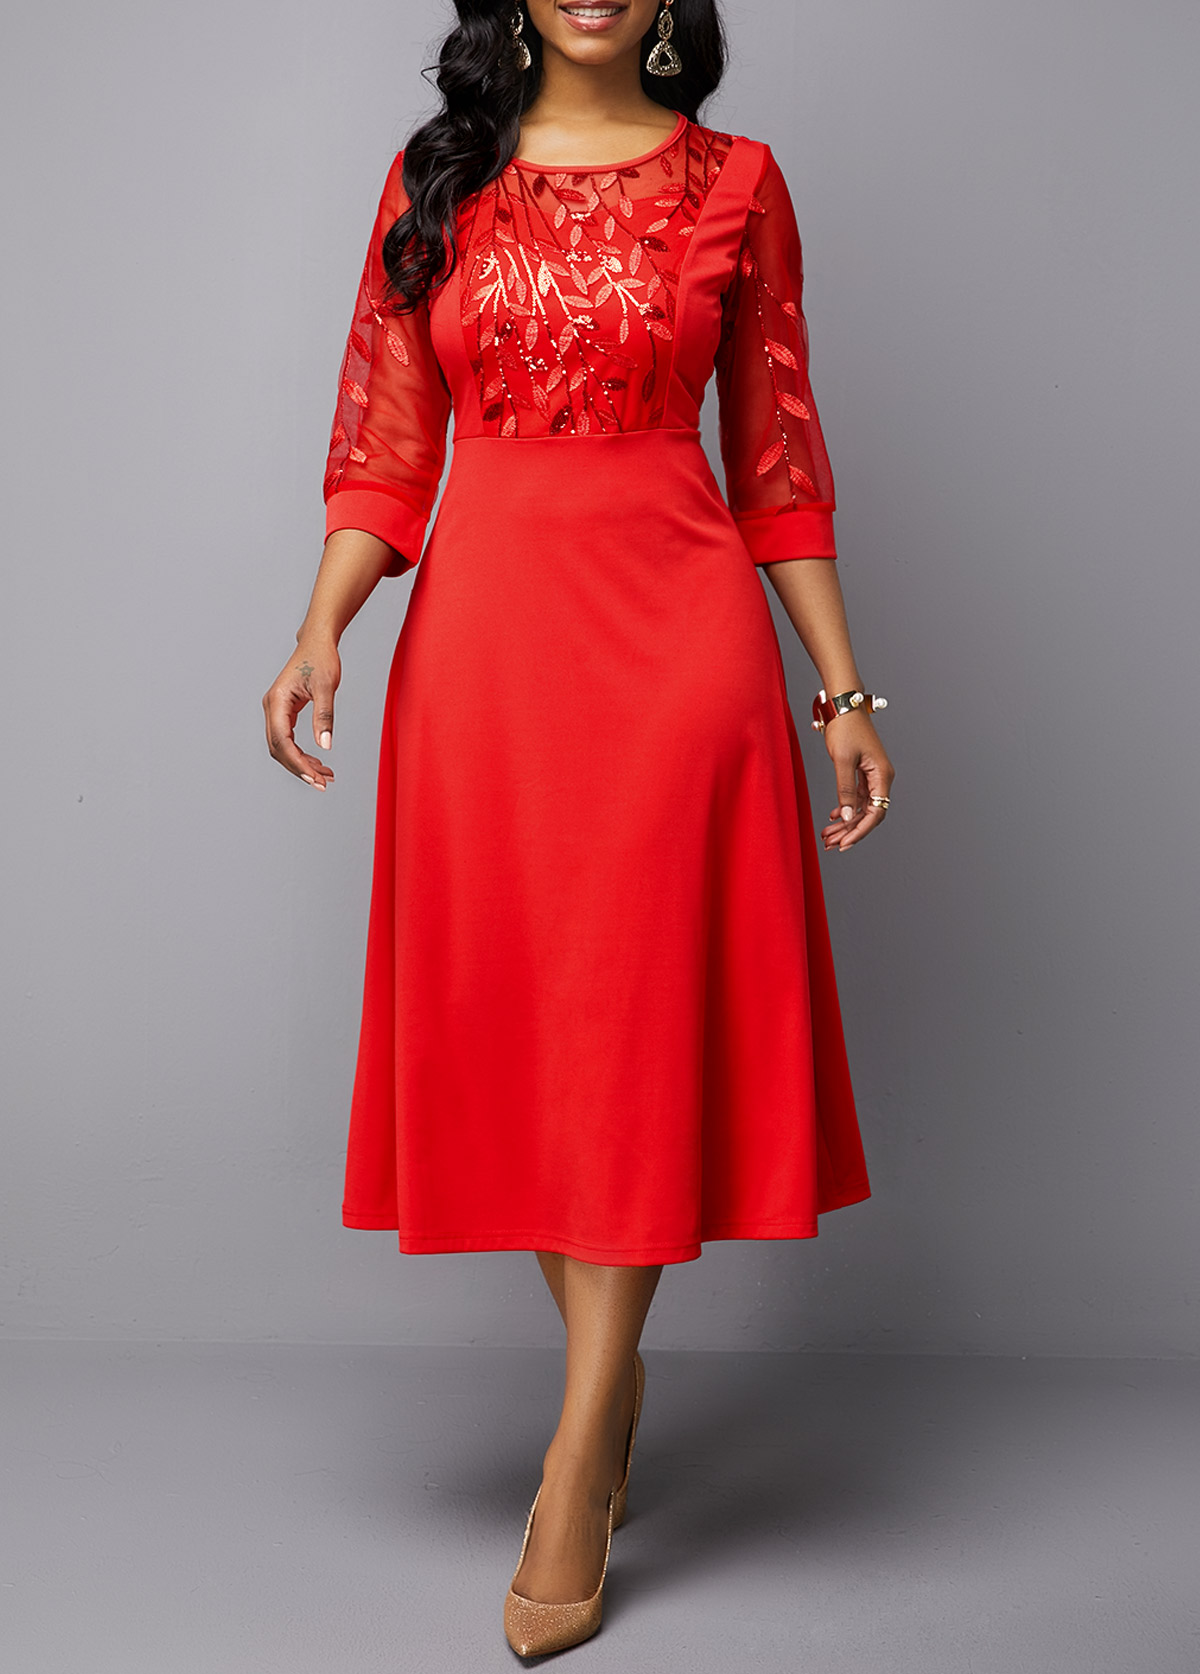 Embroidered Mesh Panel Red Round Neck Dress